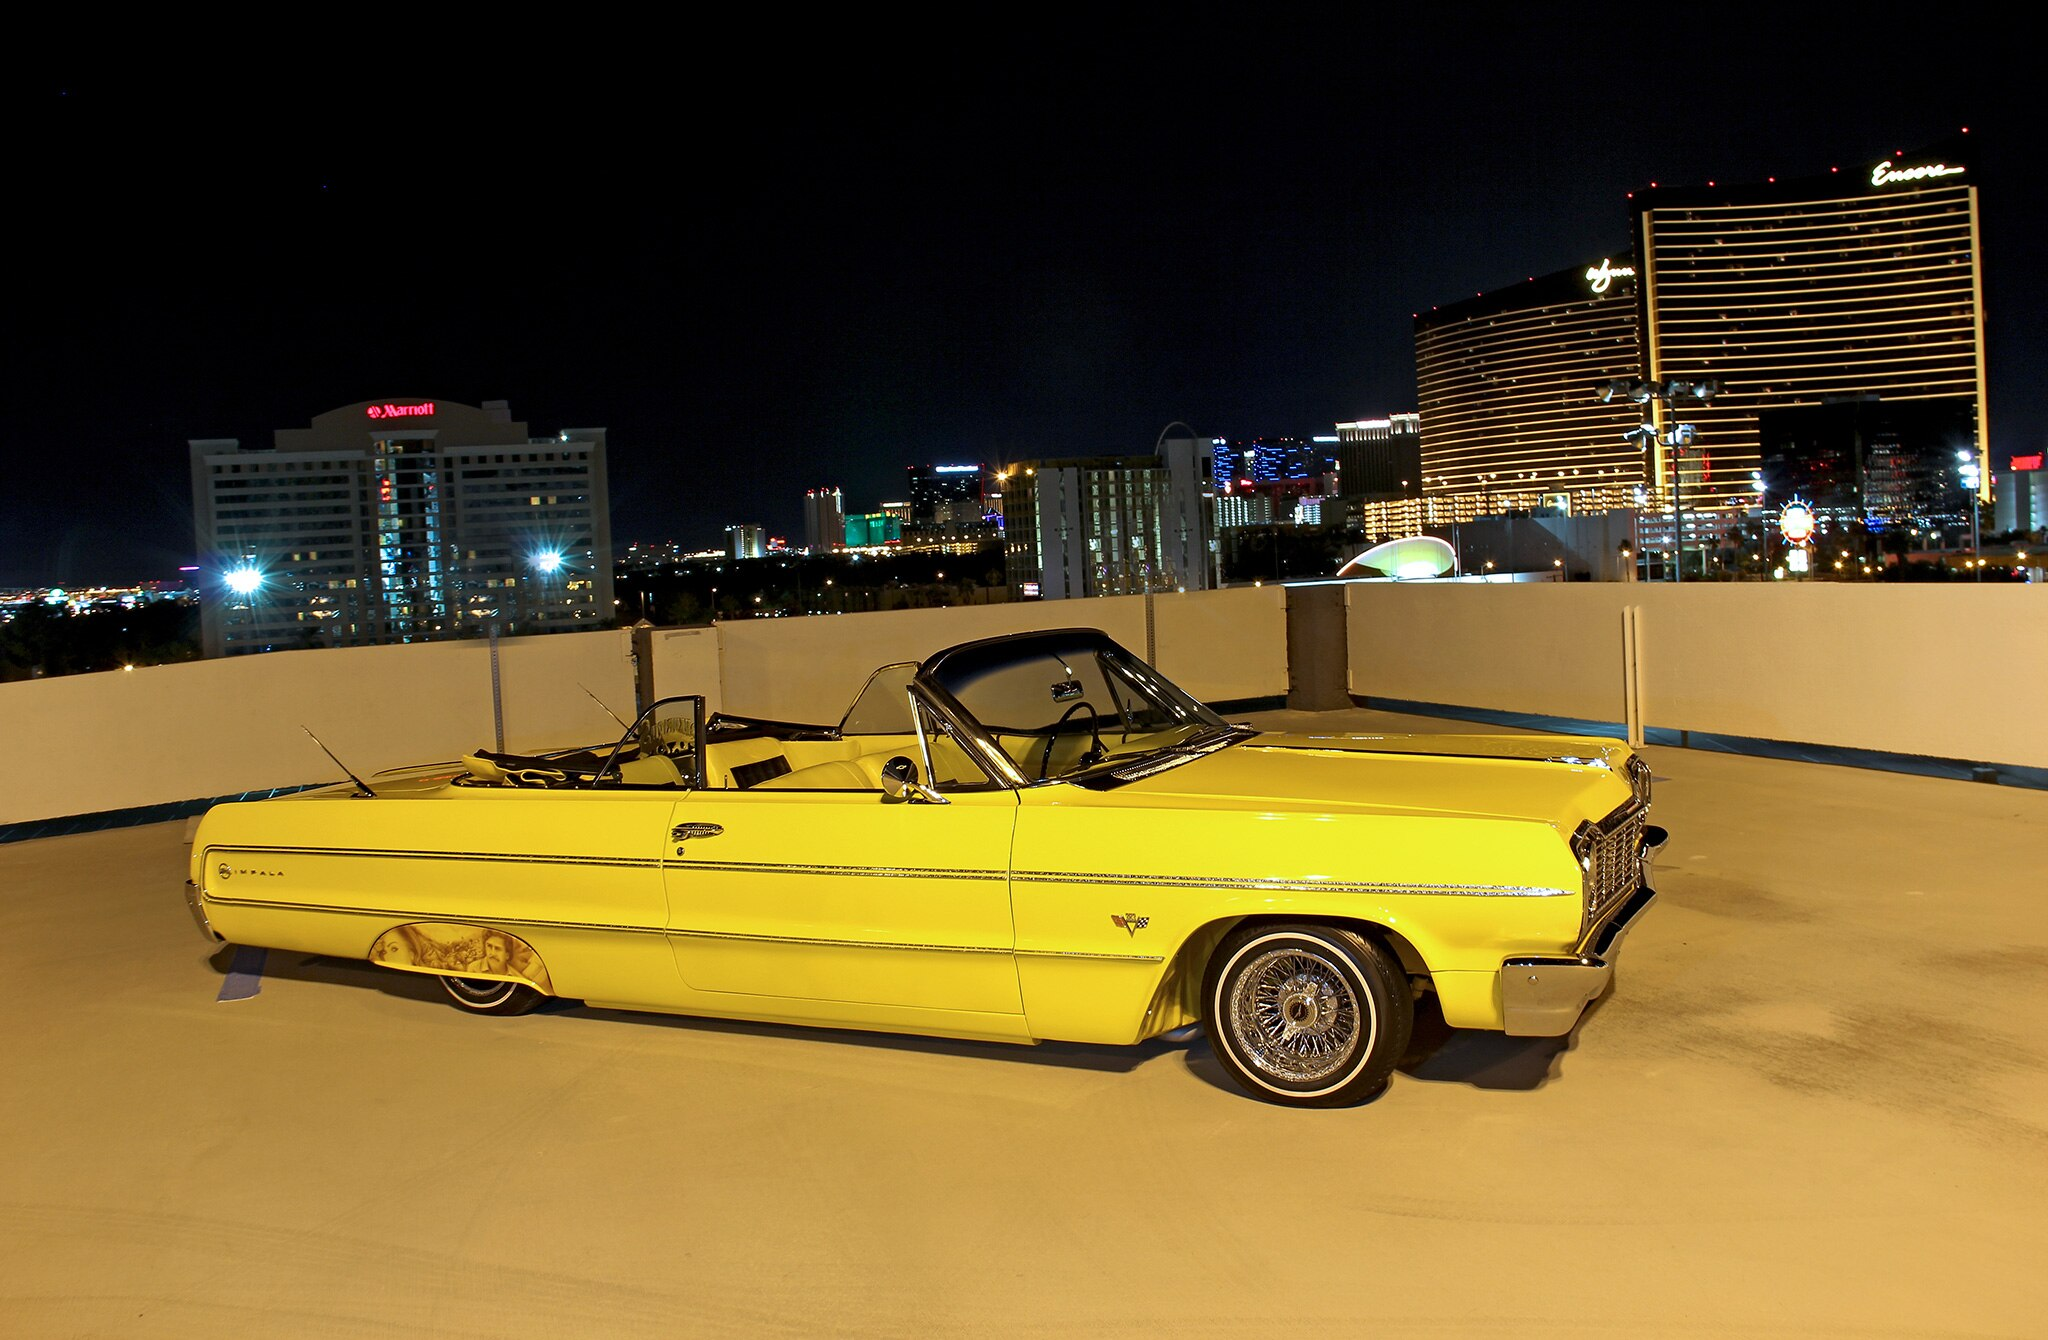 1964-chevrolet-impala-convertible-right-side-view1